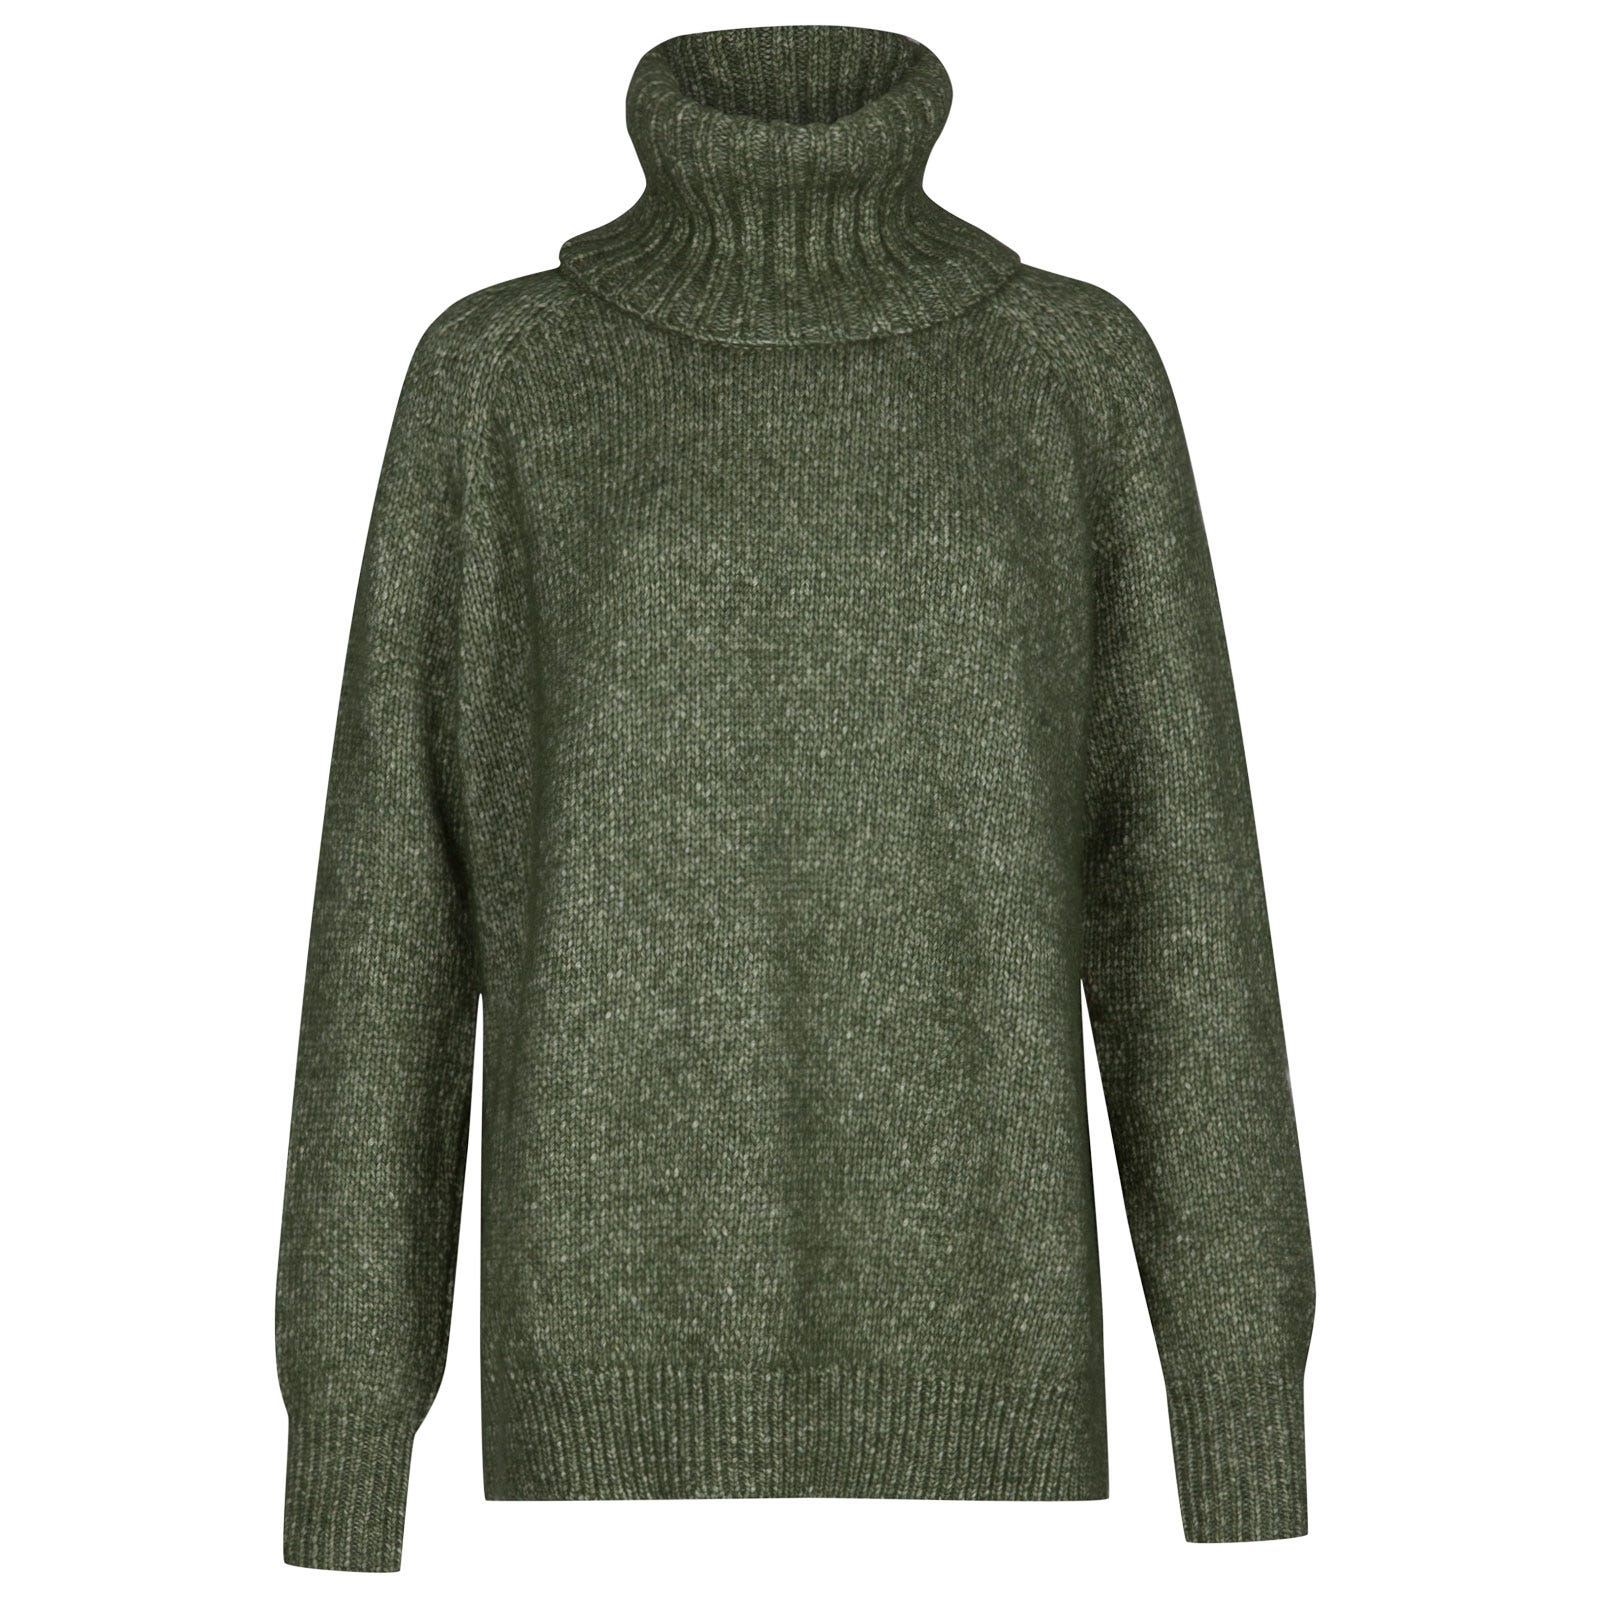 John Smedley Morar Alpaca, Wool & Cotton Sweater in Kielder Green-M